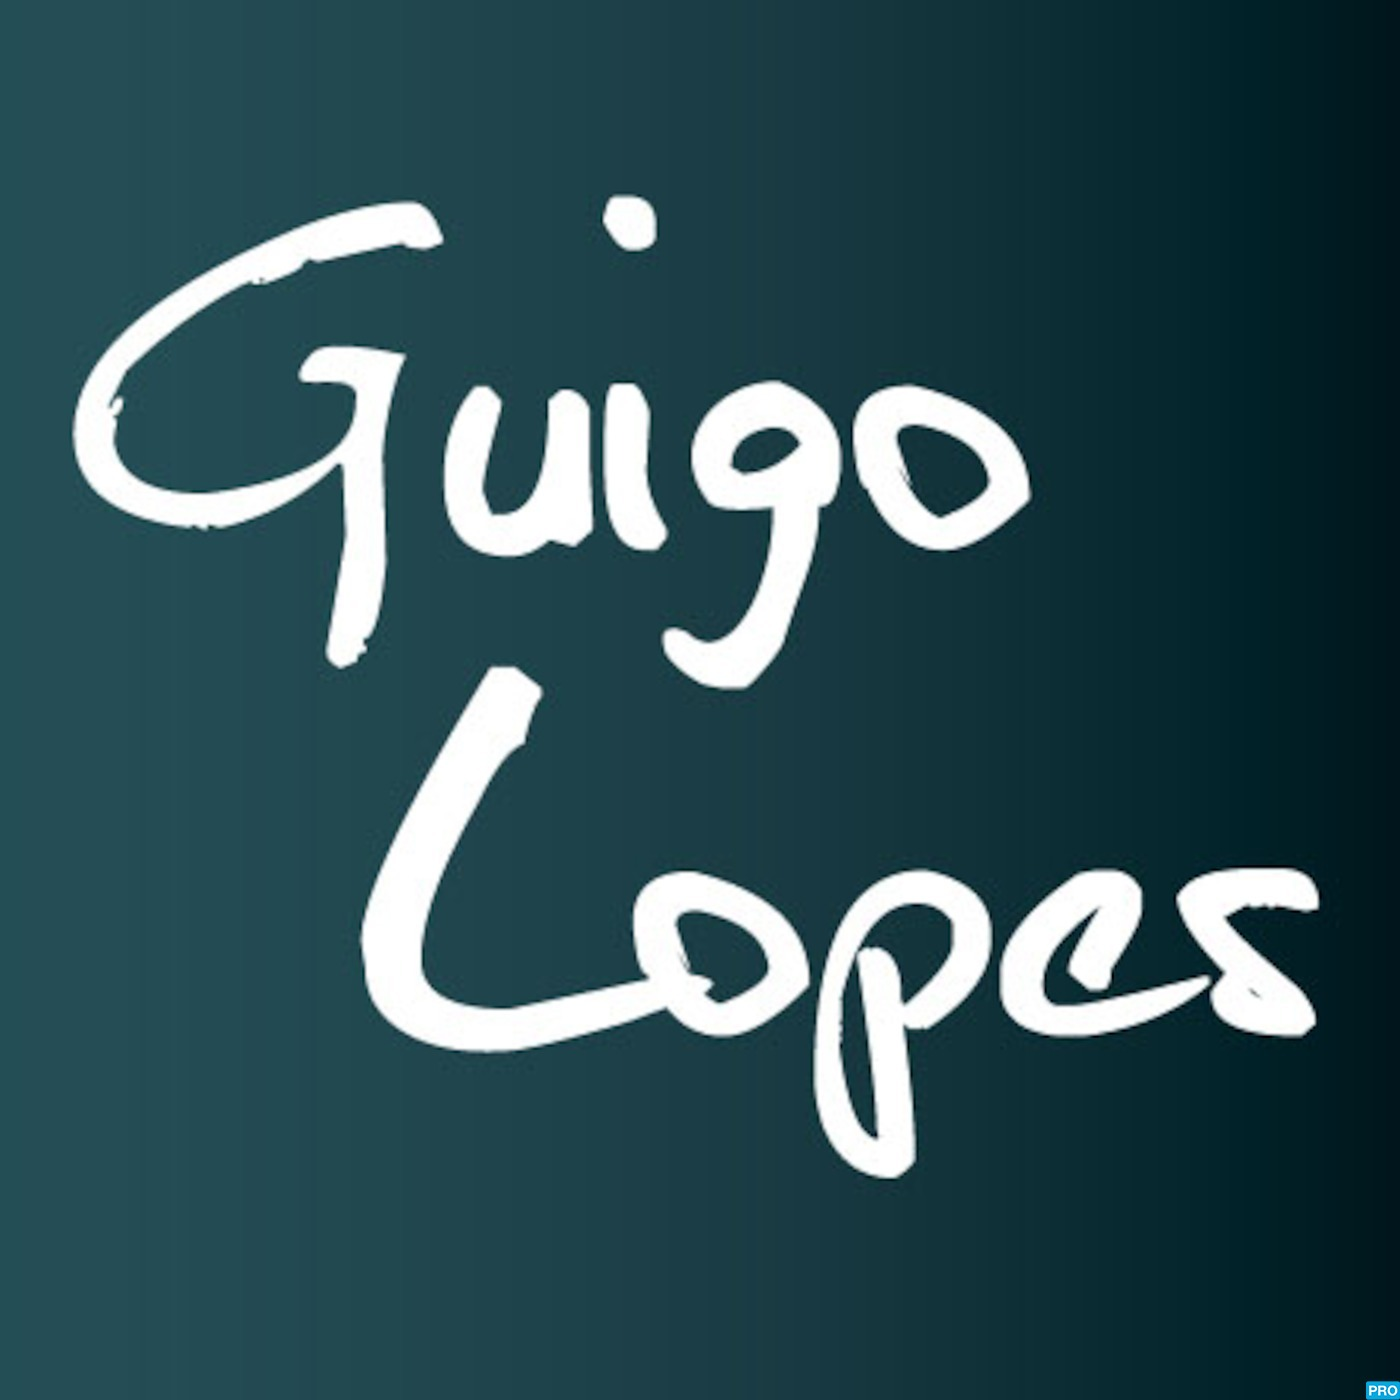 Guigo Lopes - Physical Activity & Sports